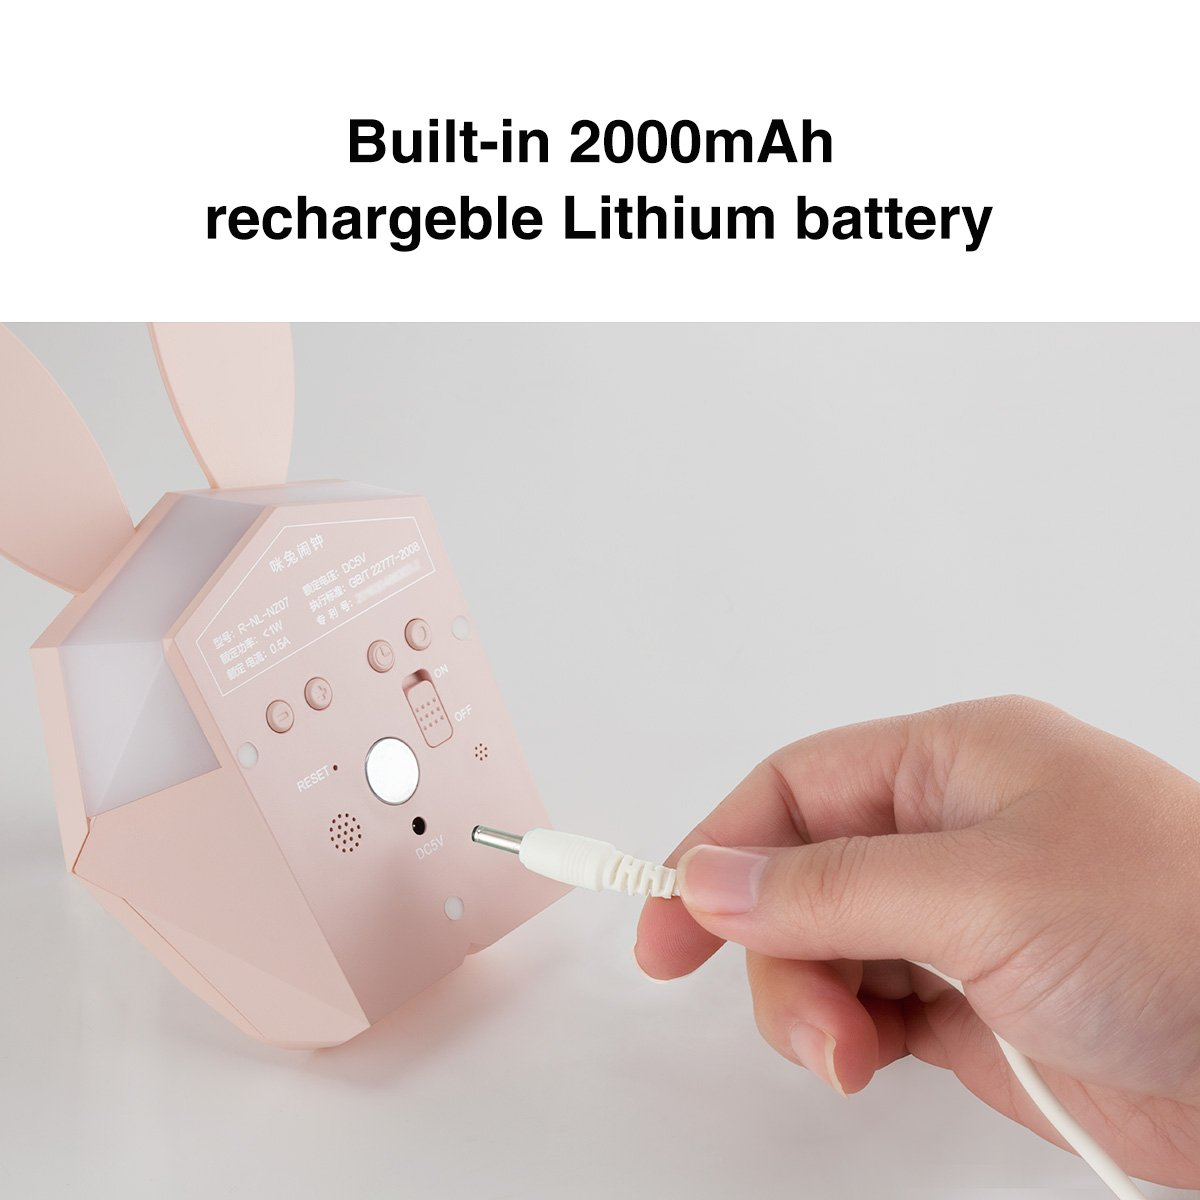 Amazon.com: HandAcc Digital Alarm Clock, Bunny Rabbit Voice-Activated LED Night Light Nursery Lamp with Temperature for Kids Room (Pink, Upgraded Version): ...